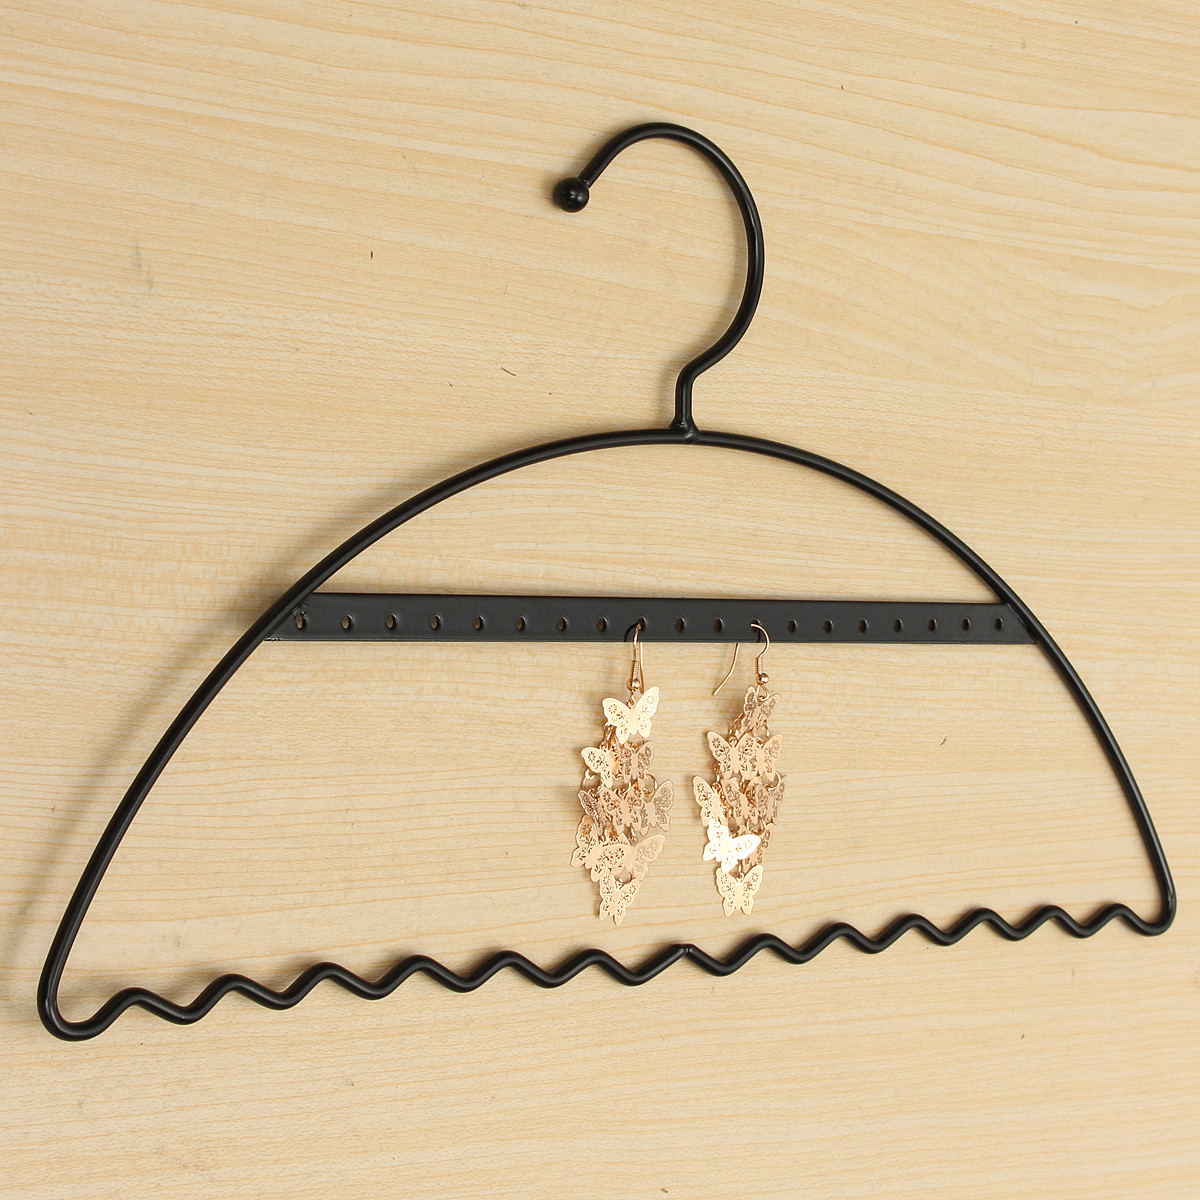 Metal Clothes Stand Shaped Earrings Jewelry Display Hanging Rack